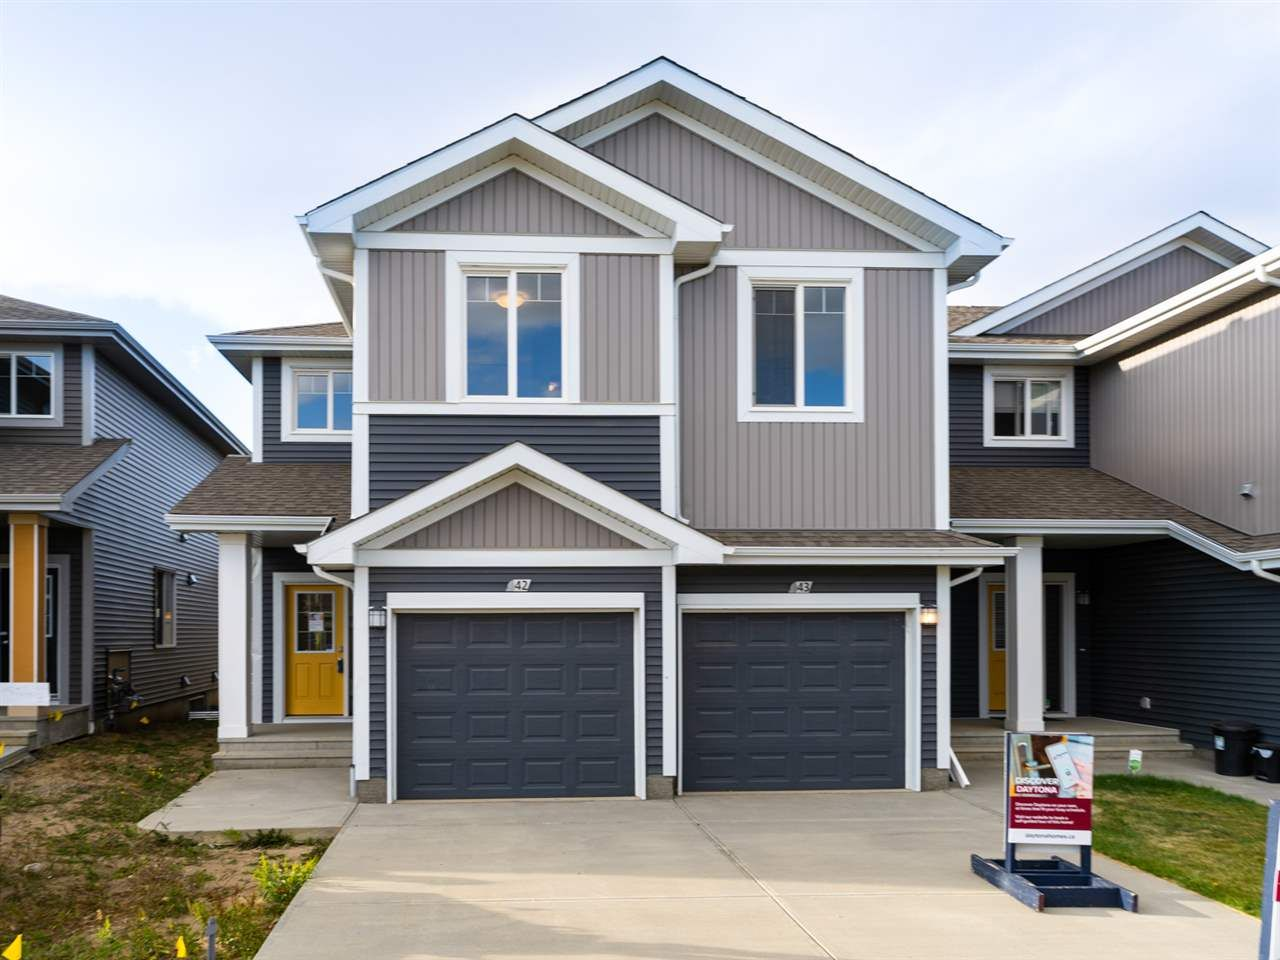 Main Photo: #42 6004 Rosenthal Way in Edmonton: Zone 58 Townhouse for sale : MLS®# E4229434